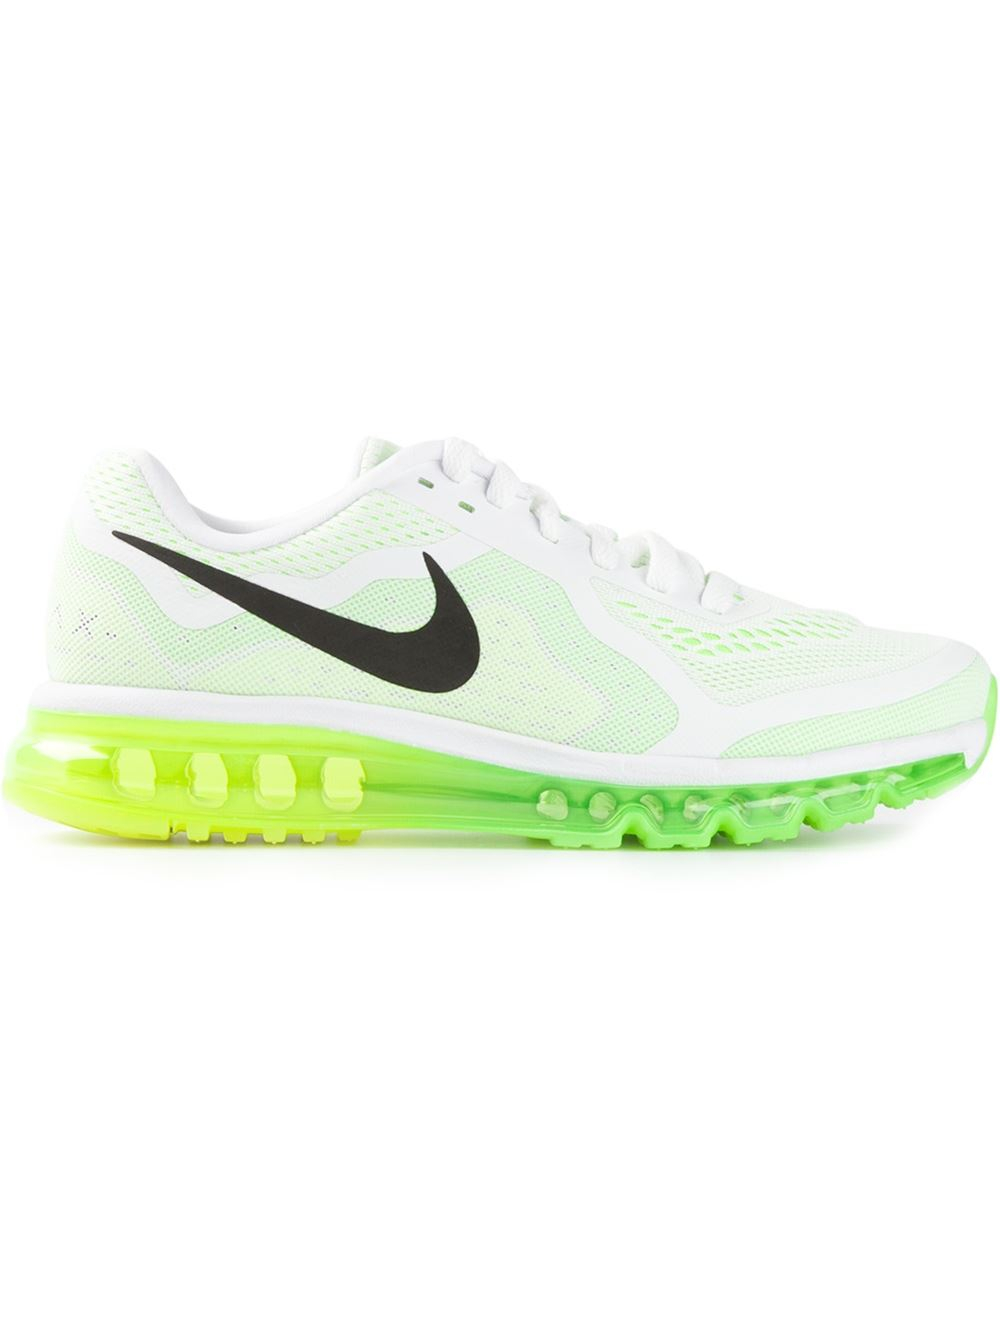 best quality best place new images of 'Air Max 2014' Neon Sole Sneakers